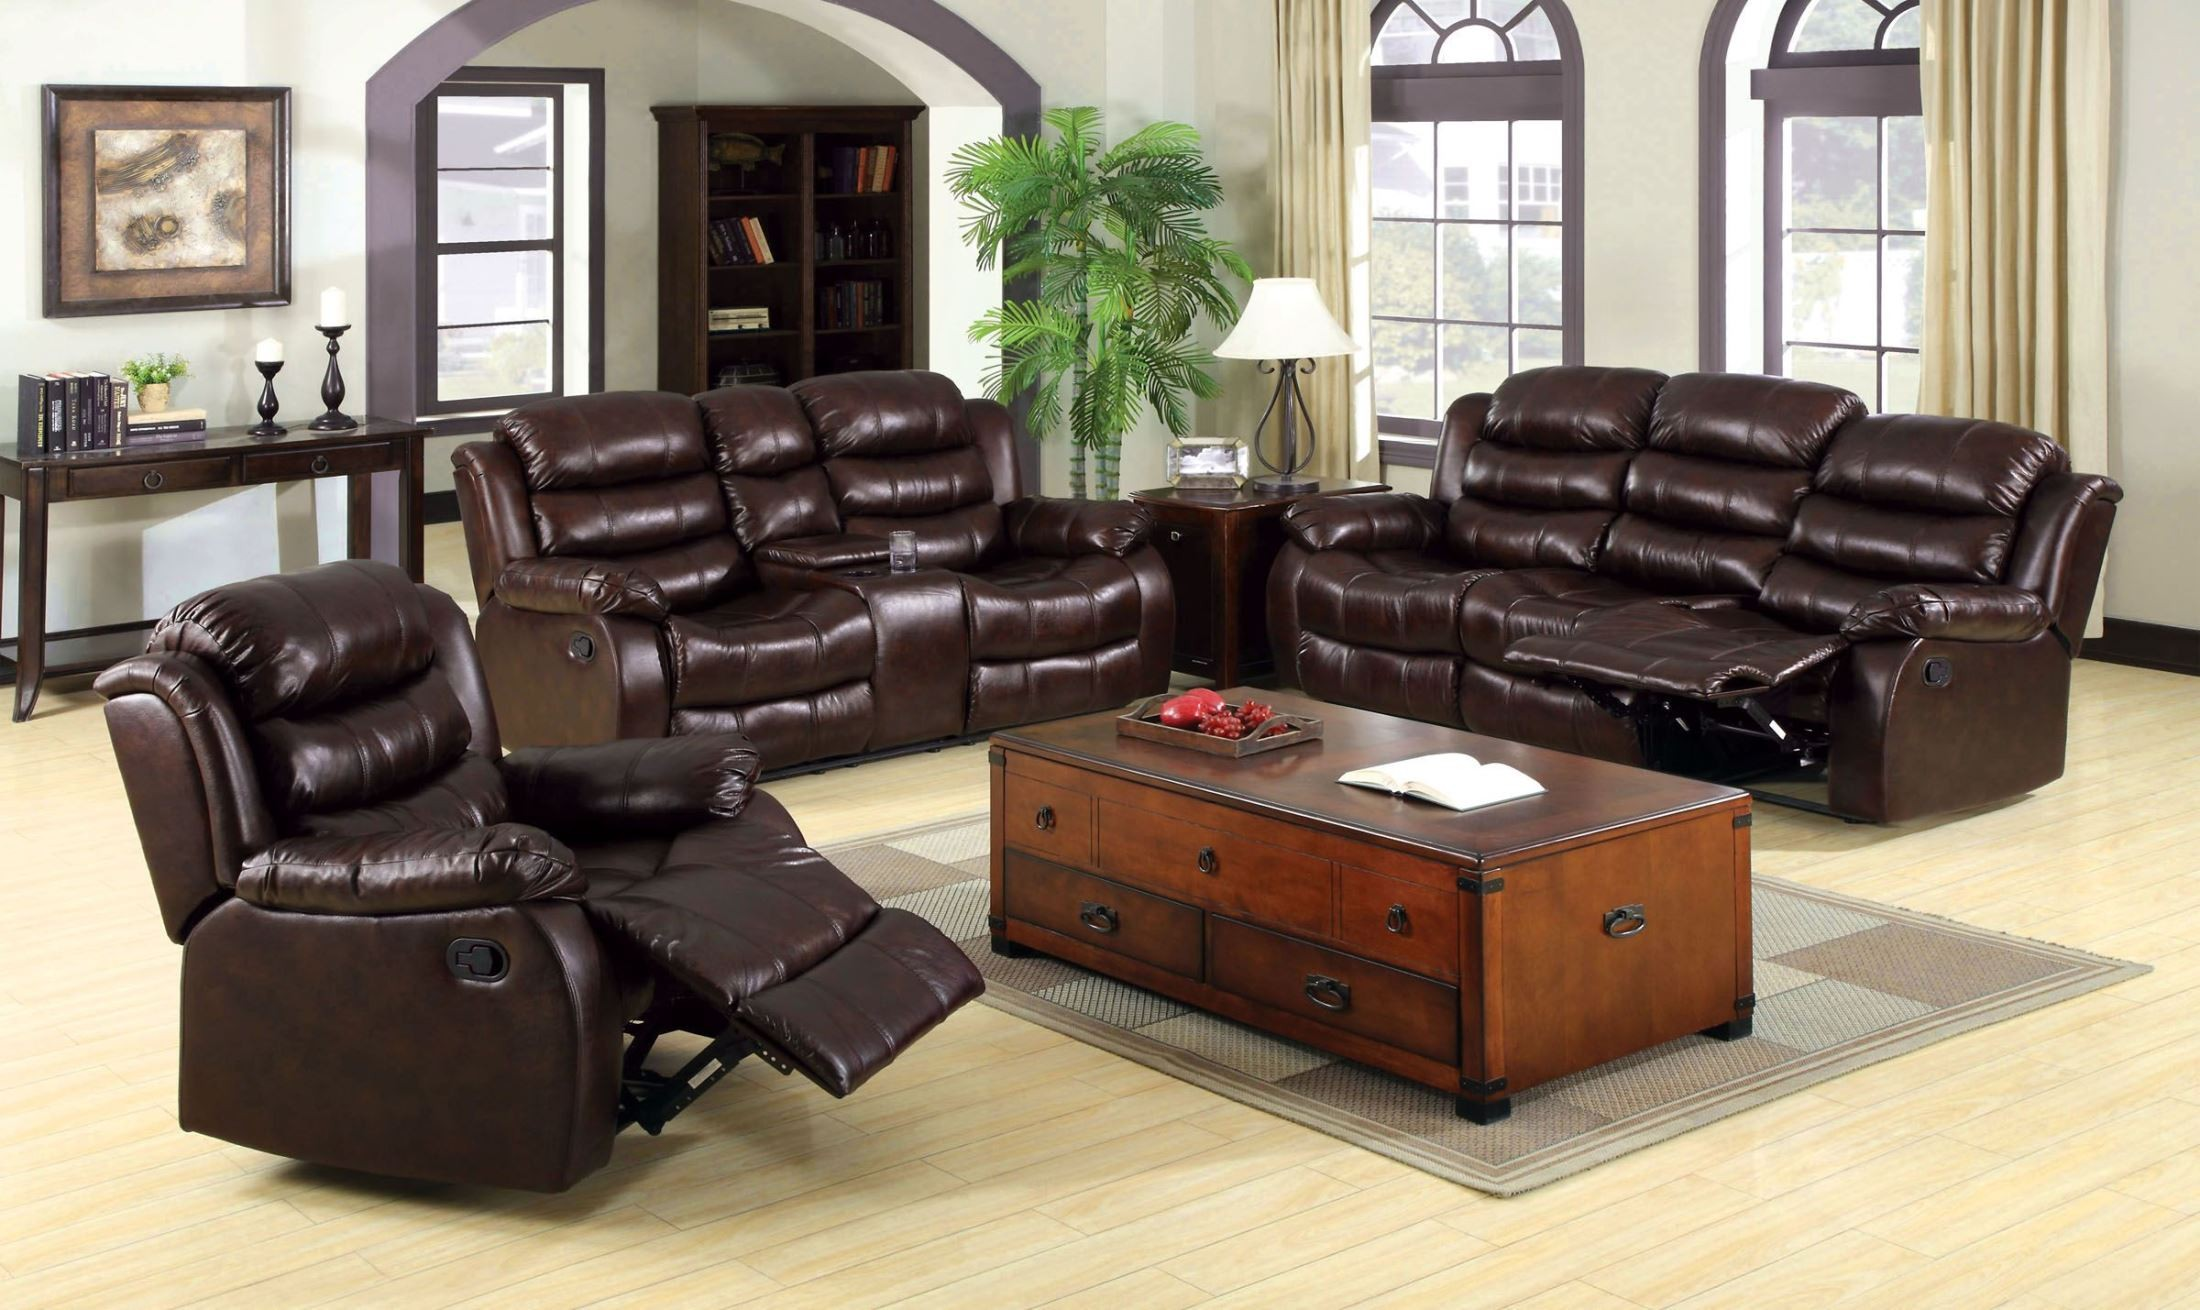 Berkshire rustic brown reclining living room set cm6551 s for M s living room furniture